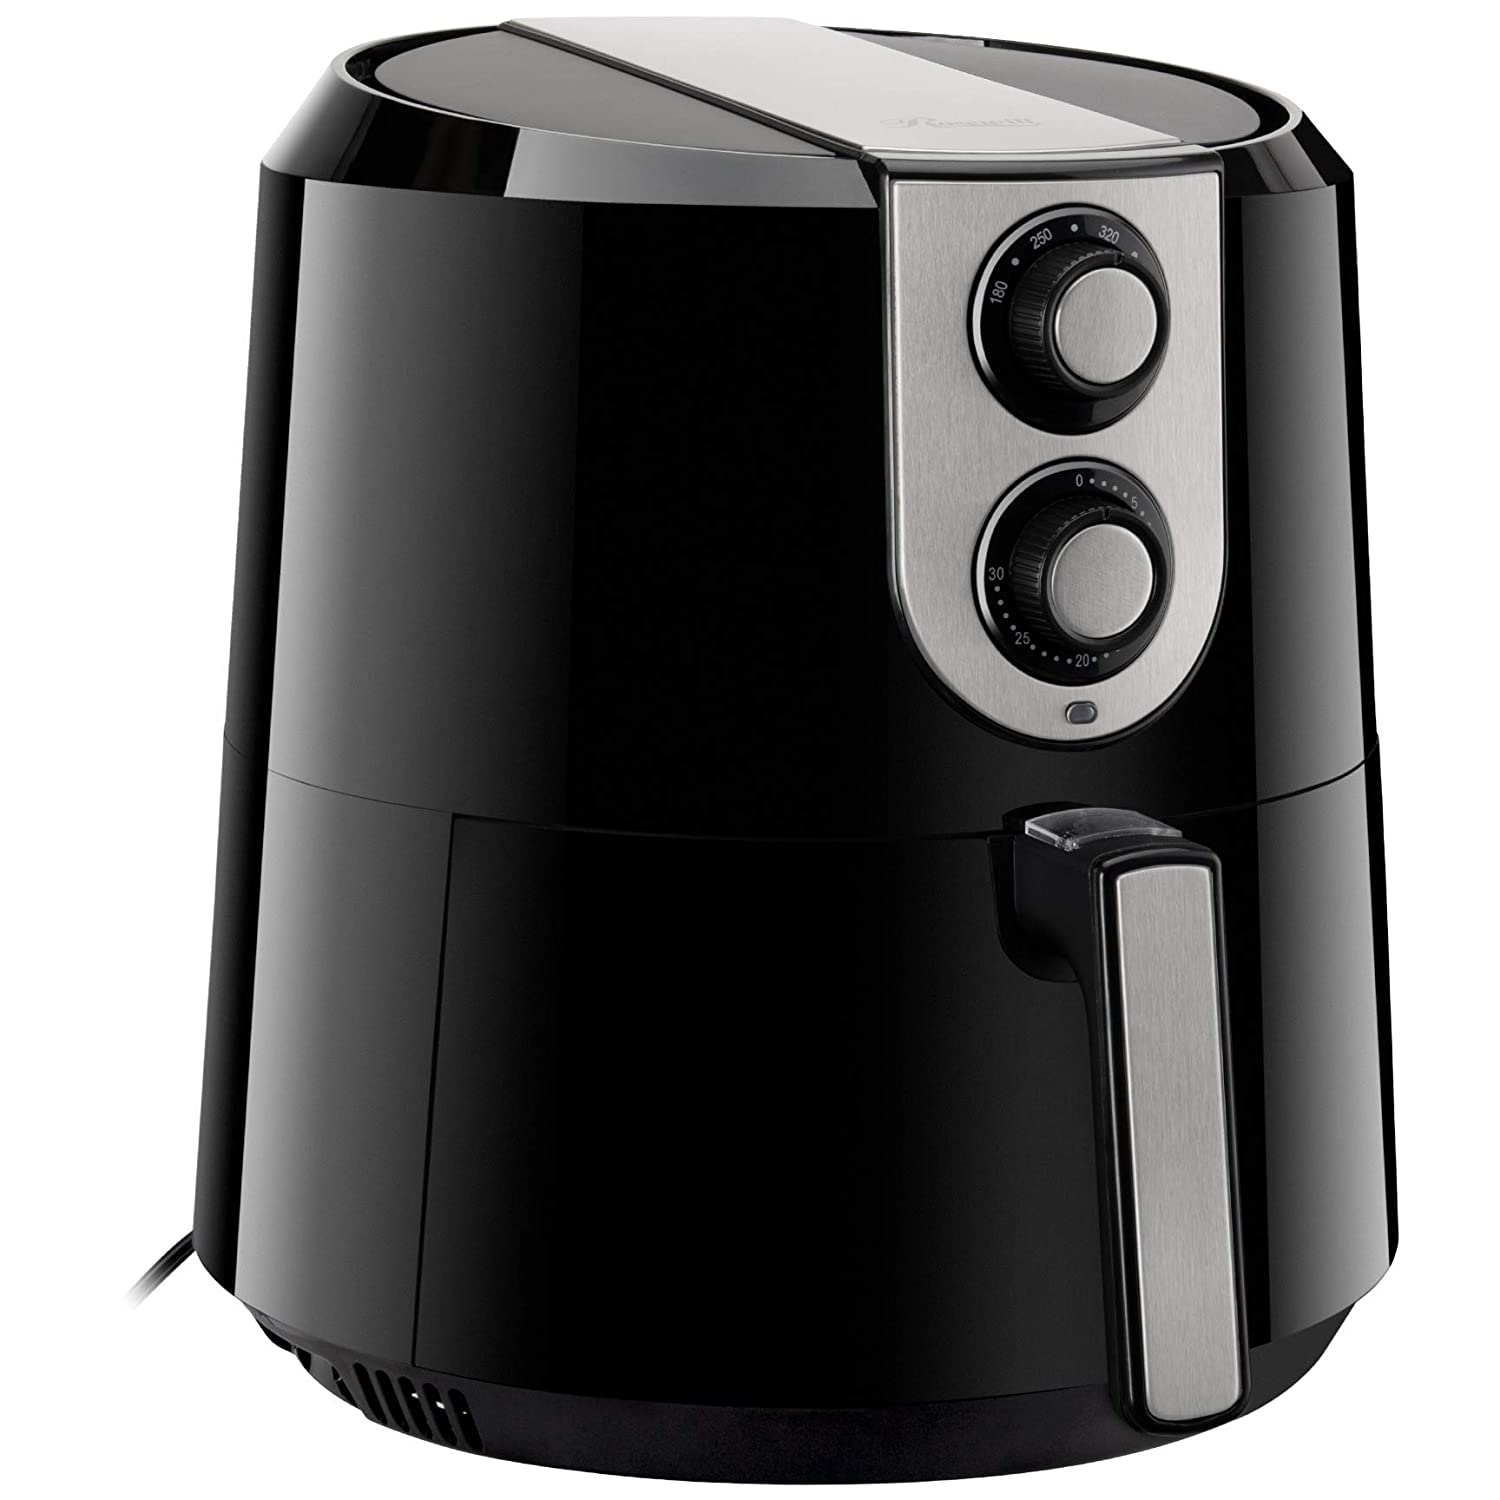 Rosewill RHAF-16003V3 5.8-QT XL Air Fryer with Temperature and Timer Settings, 5.5-L Extra Large Capacity 1800W Oil-Less Low-Fat Air Frying